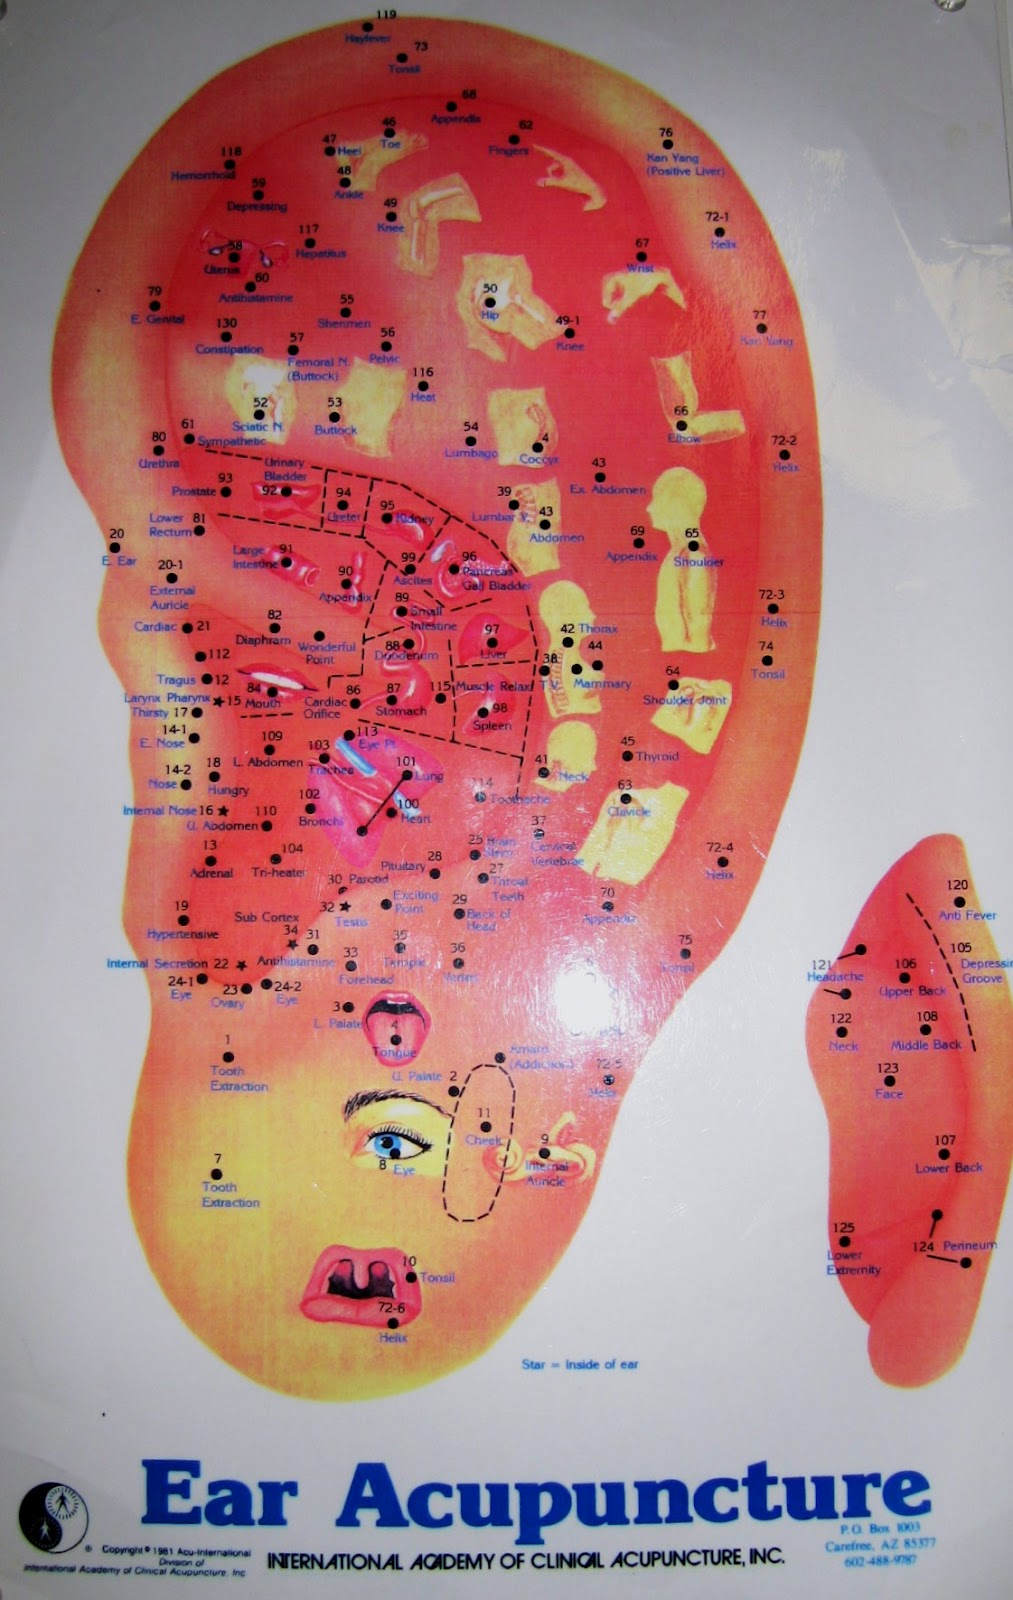 Chiropractic and Acupuncture Works